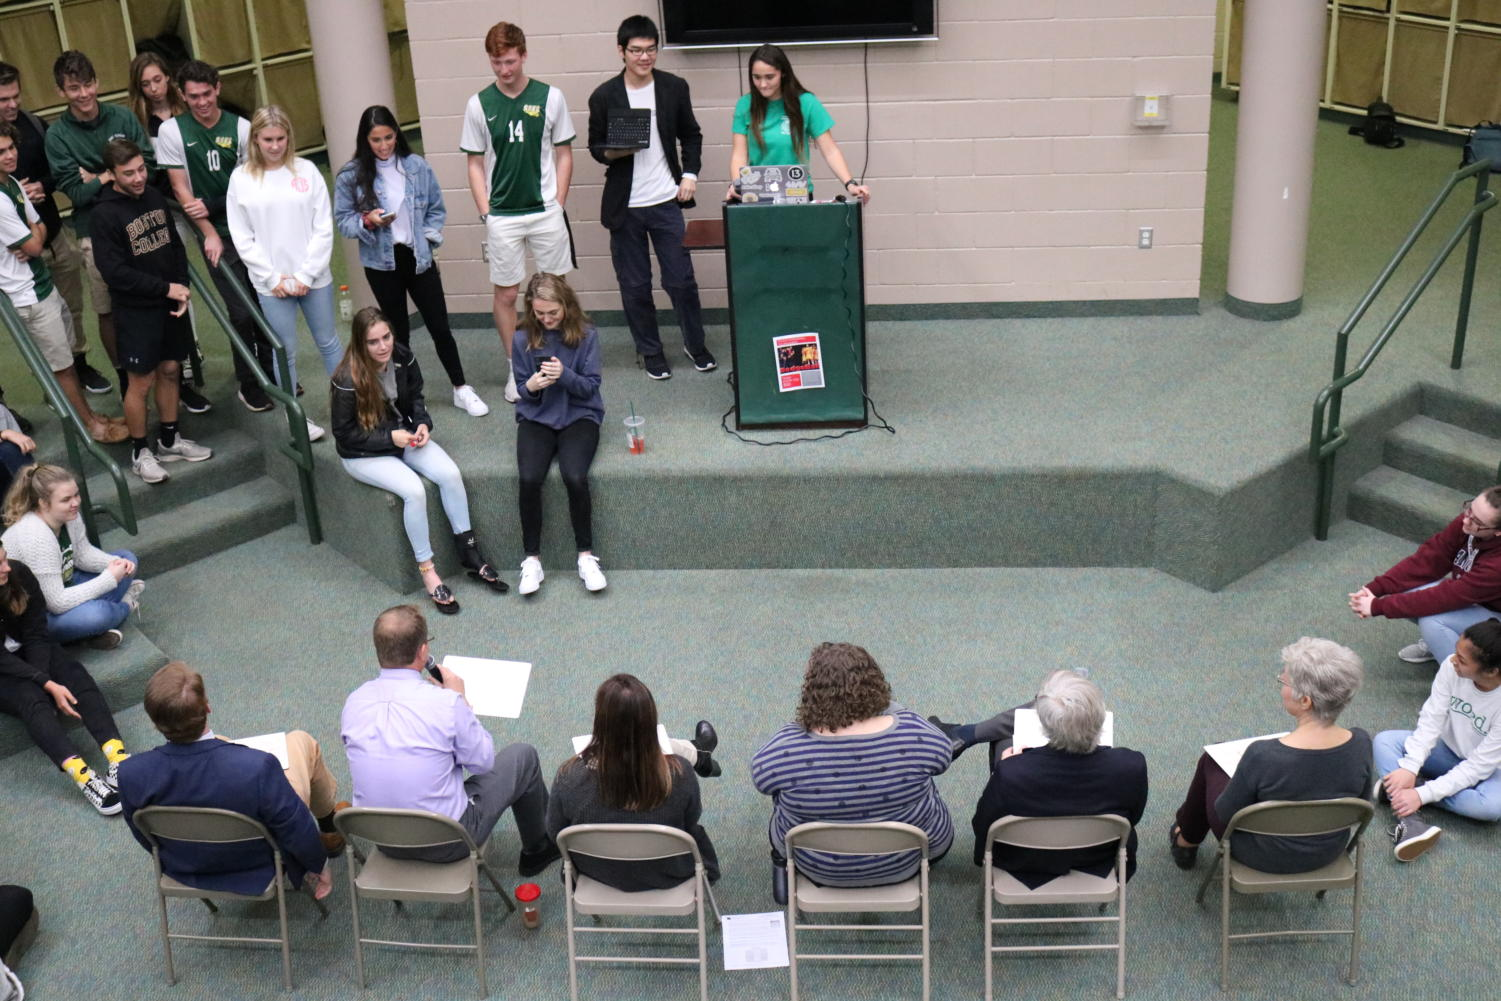 The+department+heads+face+the+Student+Council+President+Ashleigh+Rodhouse%2C+who+delivered+the+questions.++